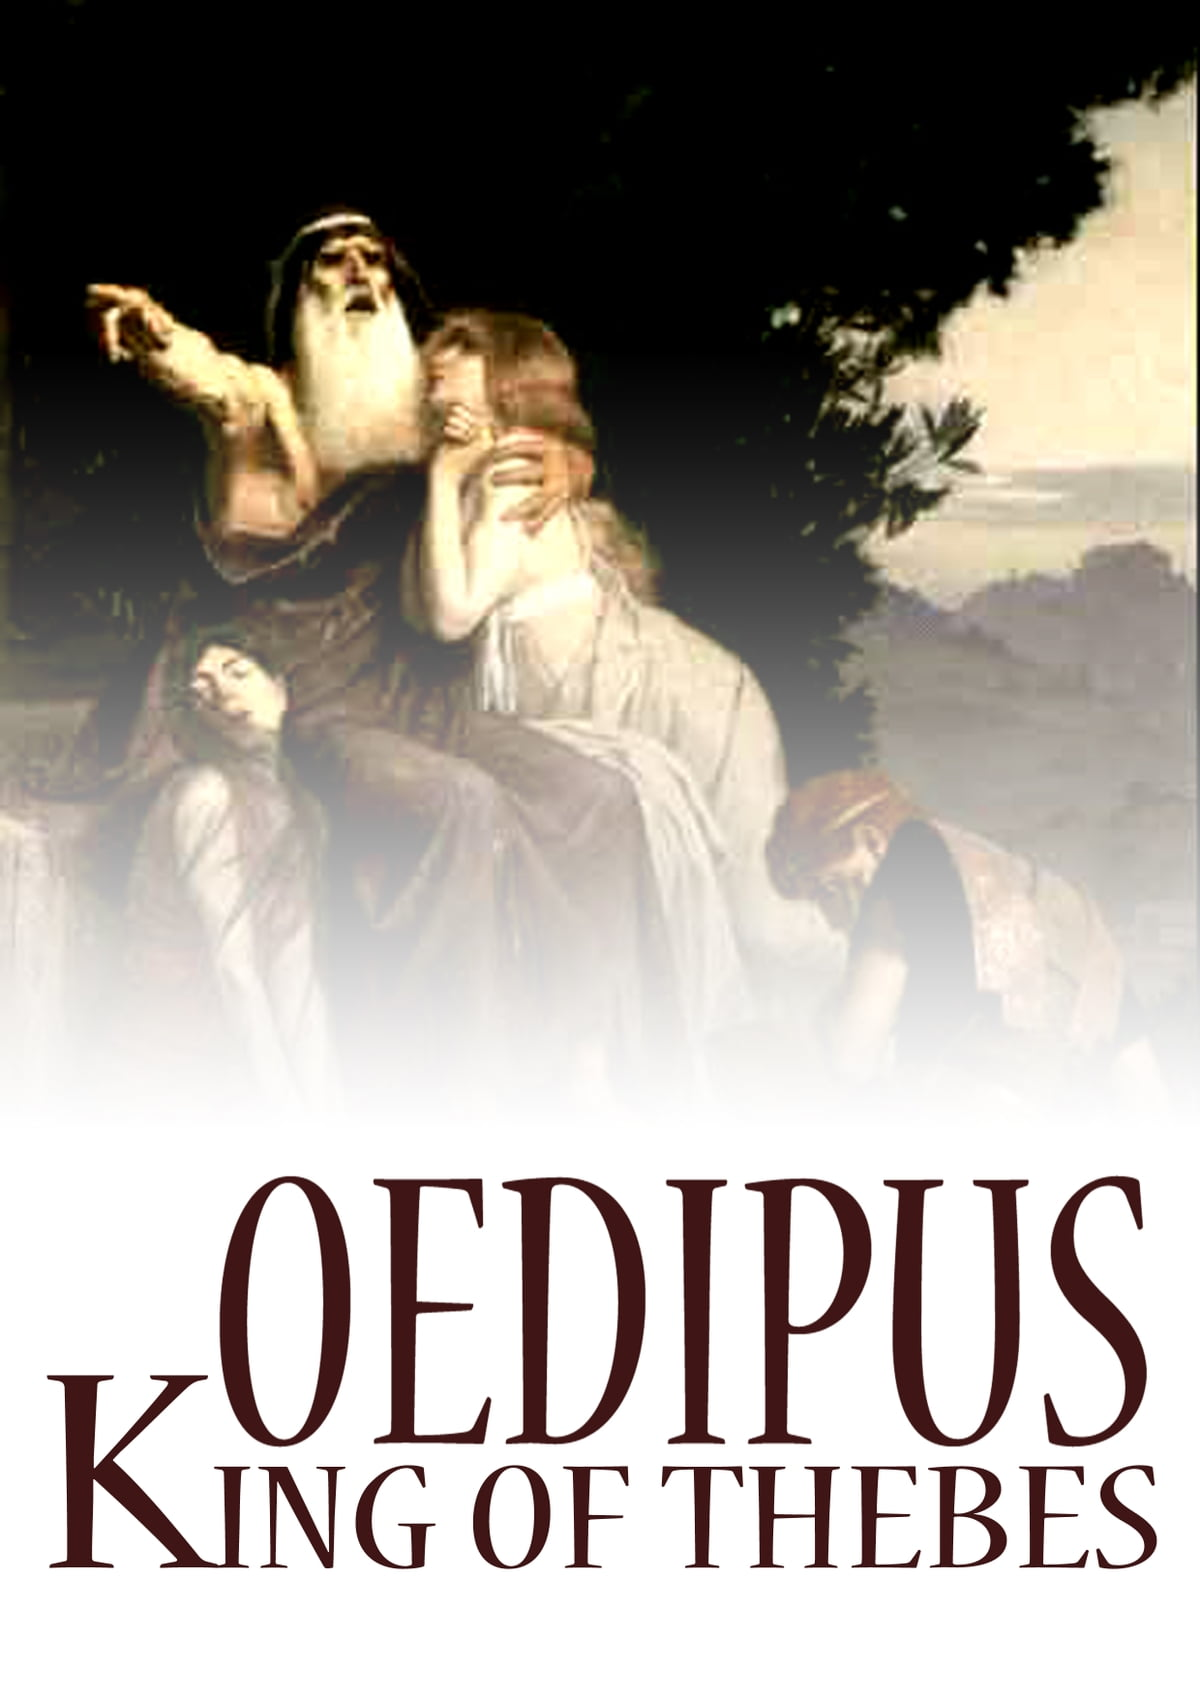 a comparison between characters from two plays oedipus from sophocless oedipus the king and torvald  Dr faustus and king oedipus are two classical tragic heroes they are the main characters of the following plays dr faustus by christopher marlowe and king oedipus by sophocles there are different features and characteristics which would make these characters be considered as tragic heroes than another type of character.